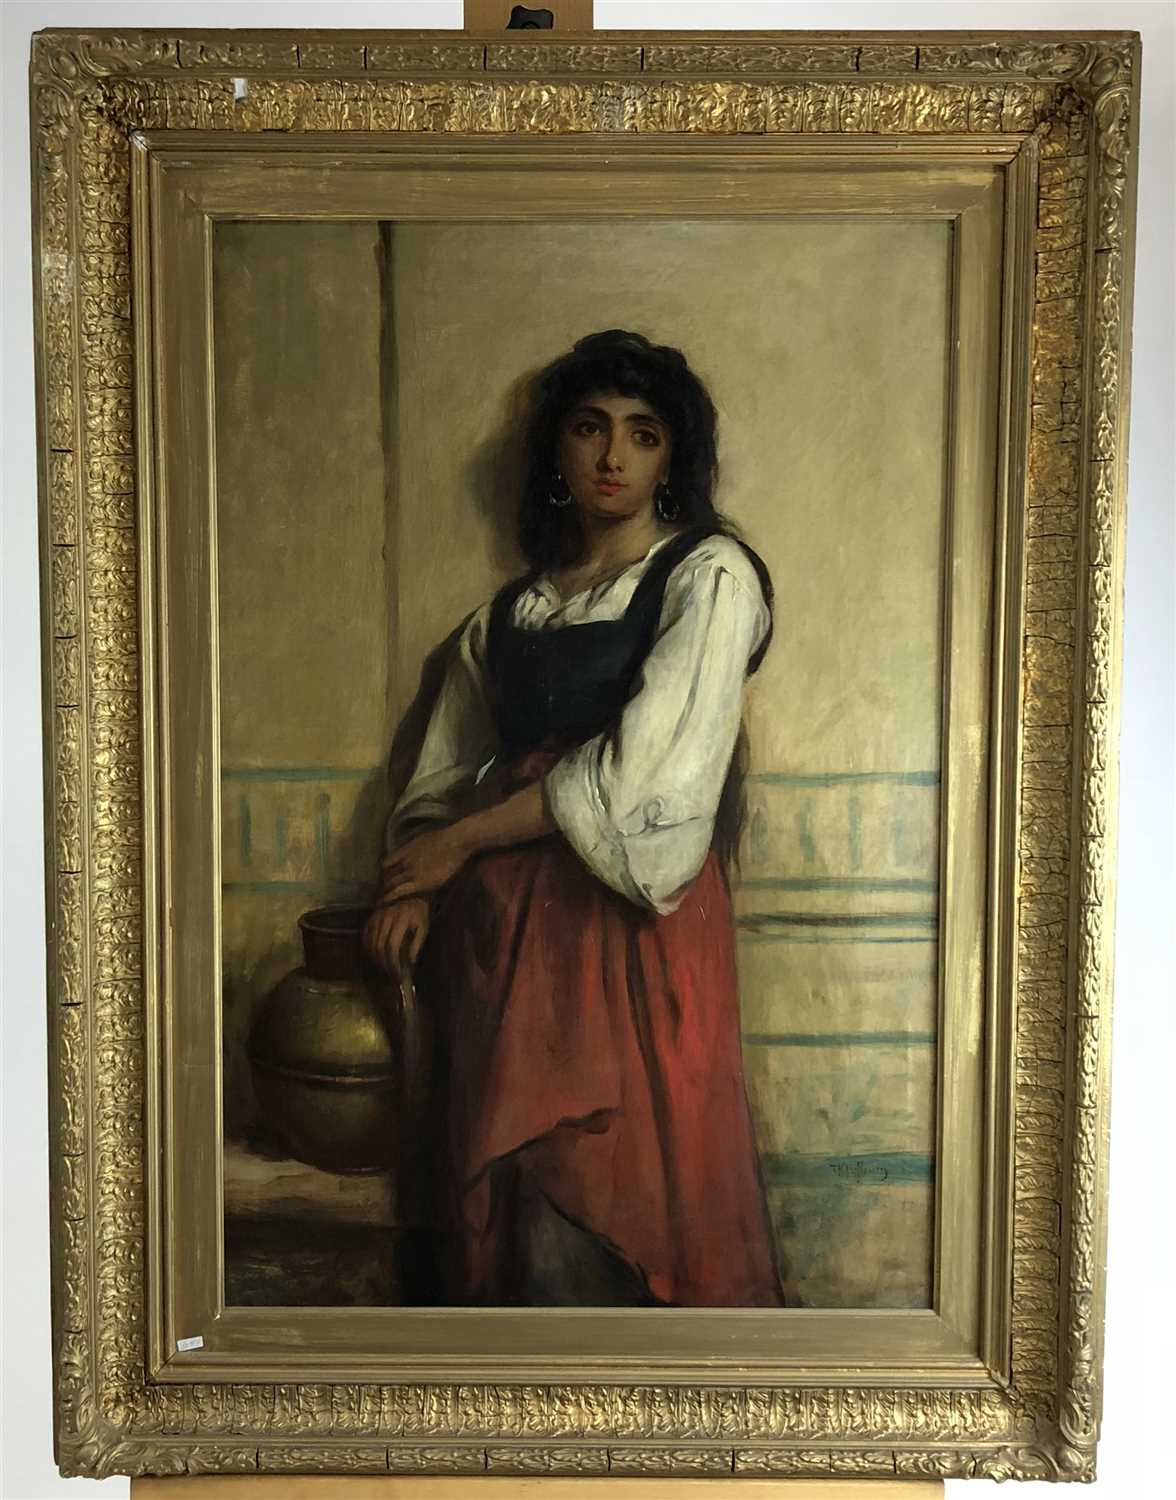 Lot 76-Thomas Kent Pelham, oil on canvas, A young water carrier